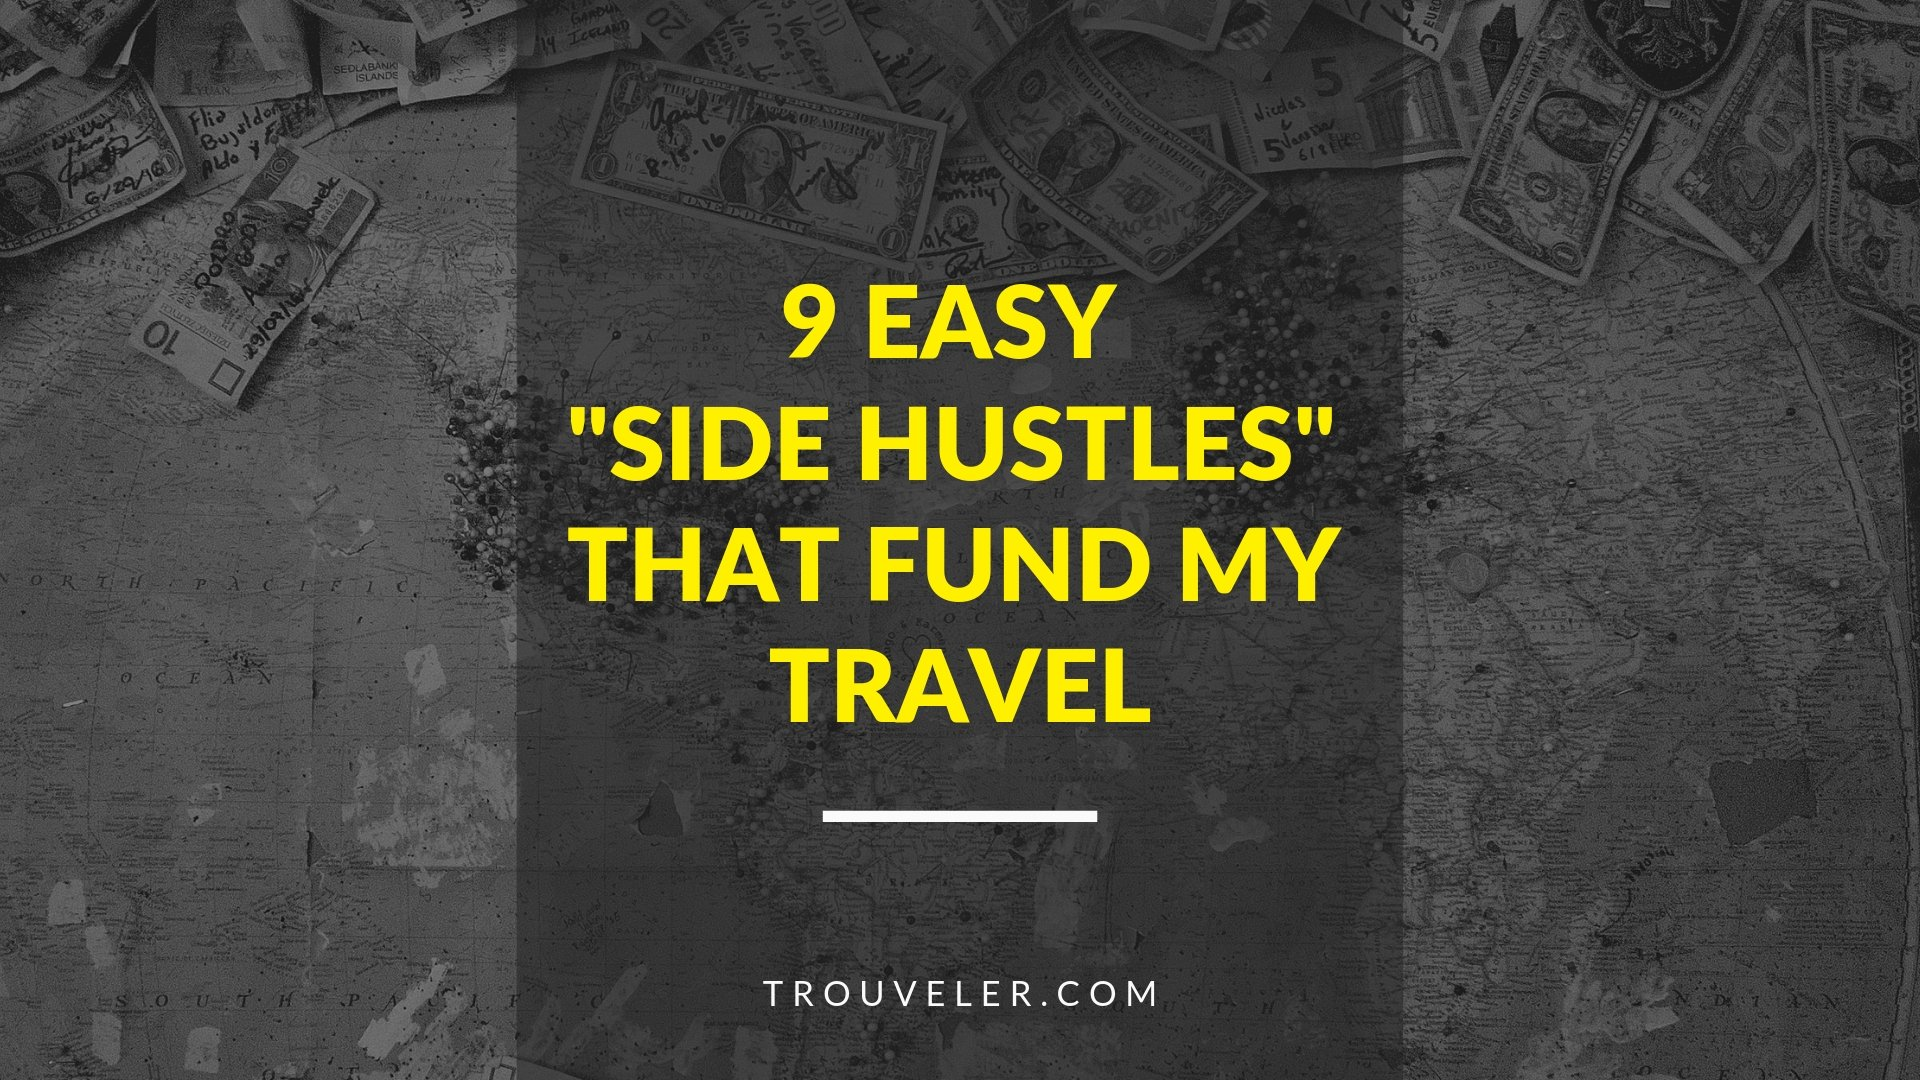 Easy Side Hustles that Fund Travel for Me - Trouveler.com